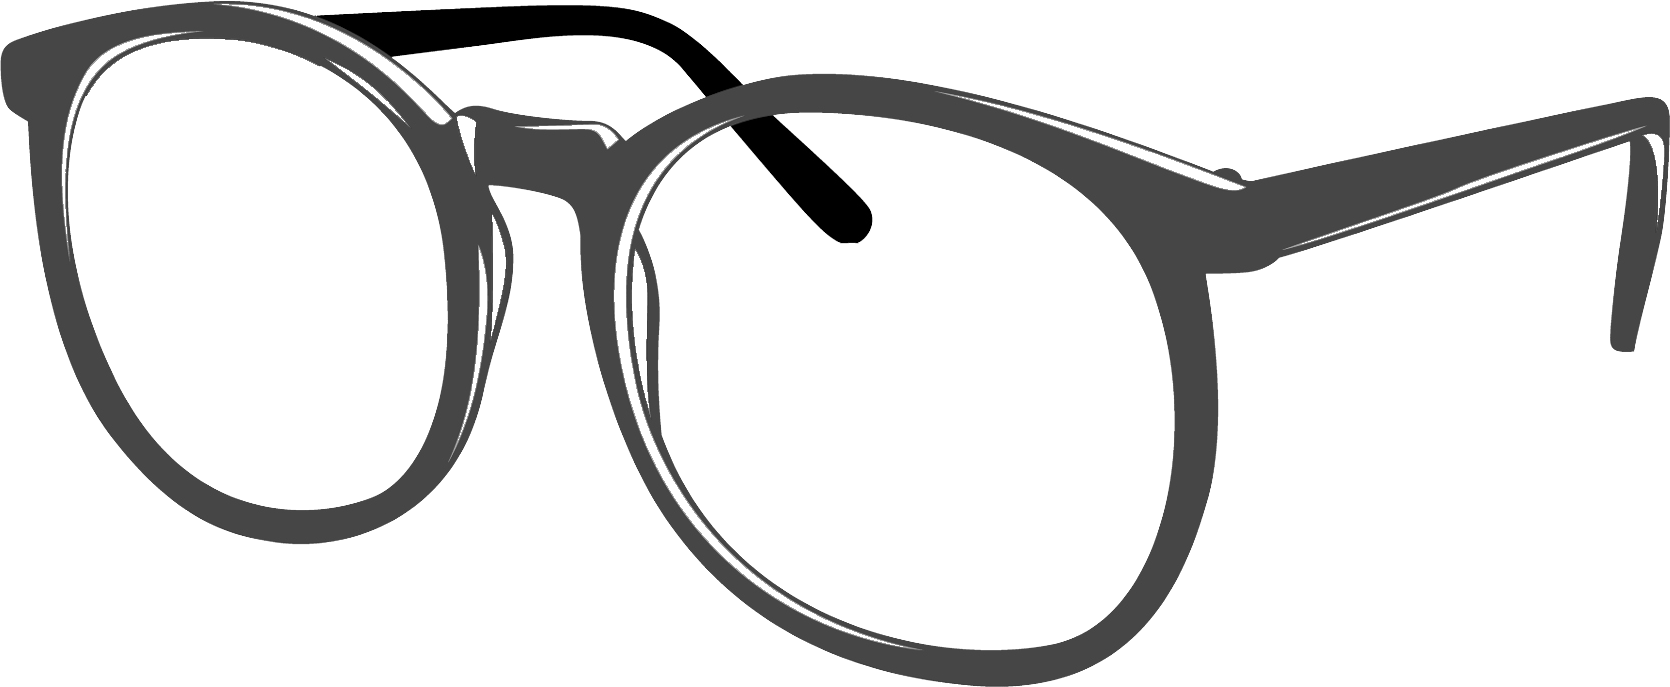 Glasses Png Images Free Glasses Png Images Free Download